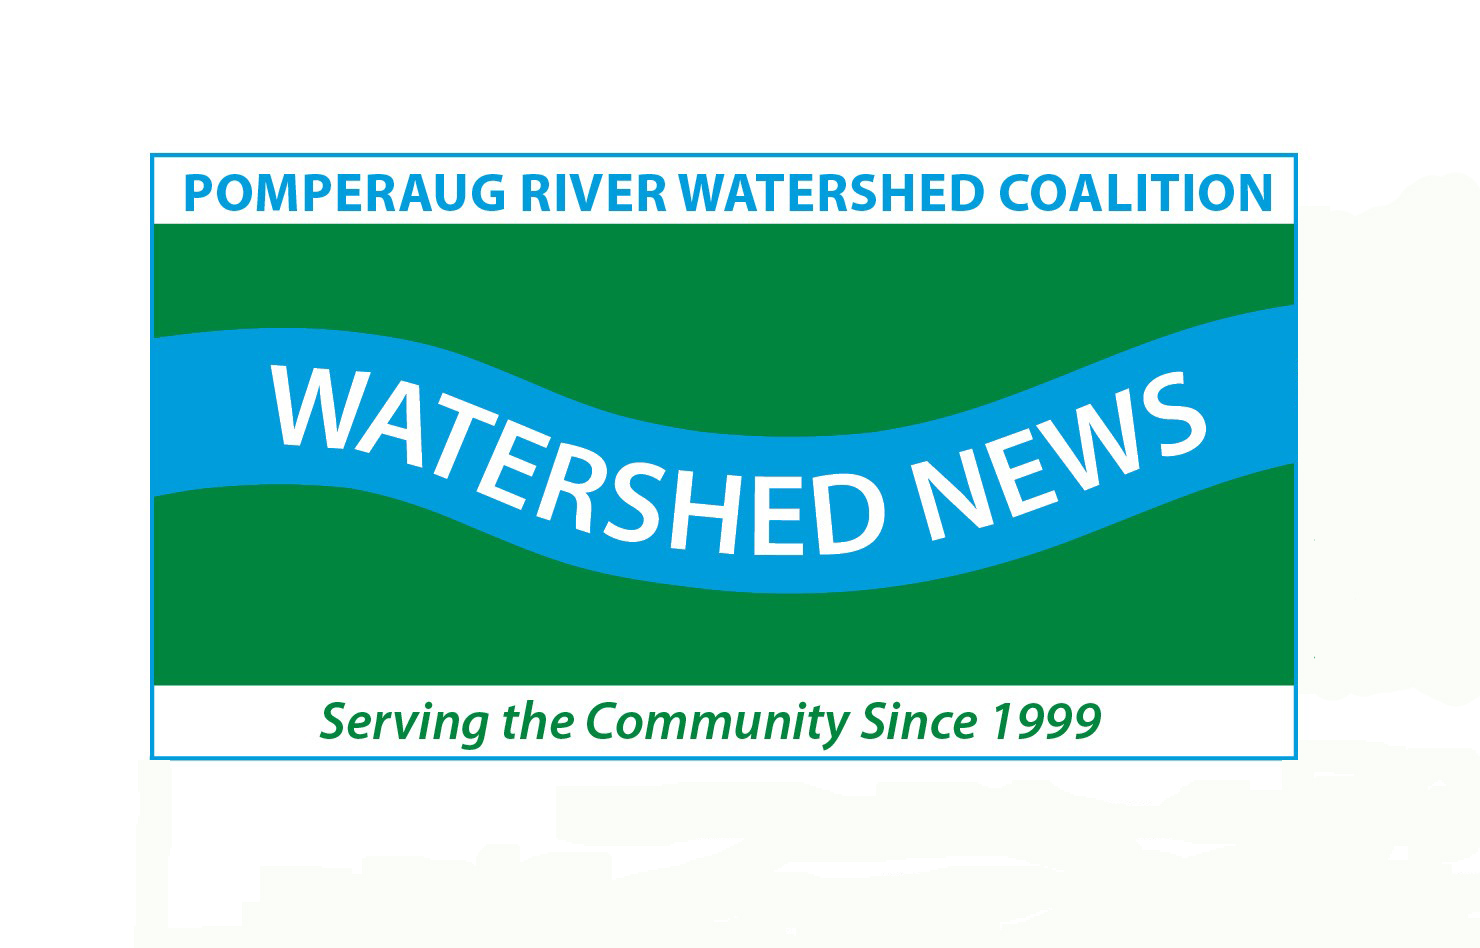 Watershed News Spring 2015 | Pomperaug River Watershed Coalition